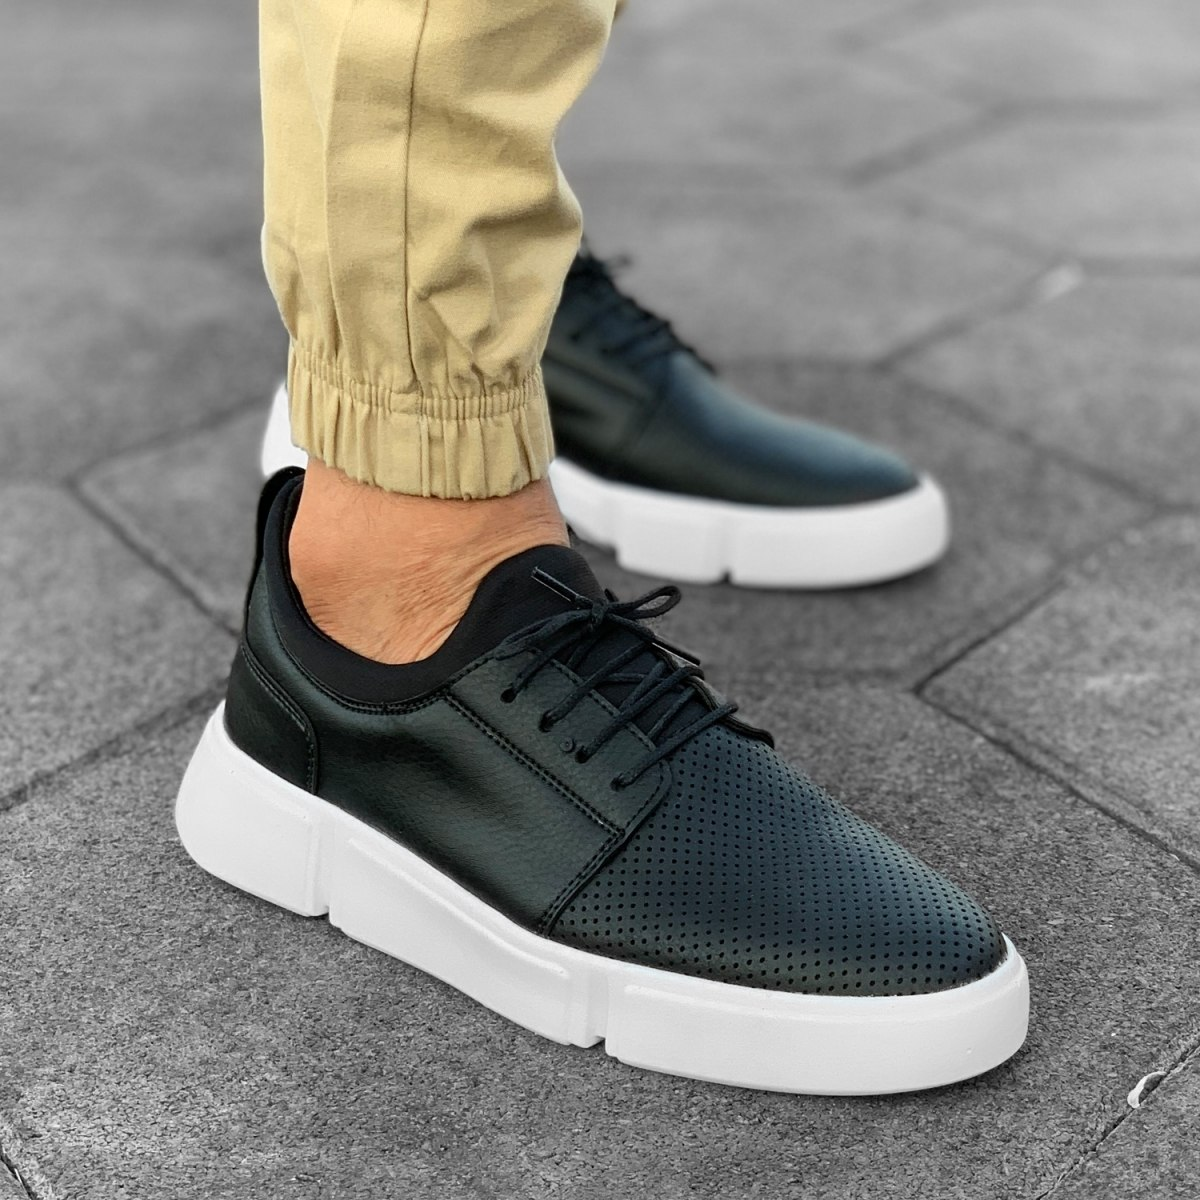 Casual Street Sneakers in Black-White